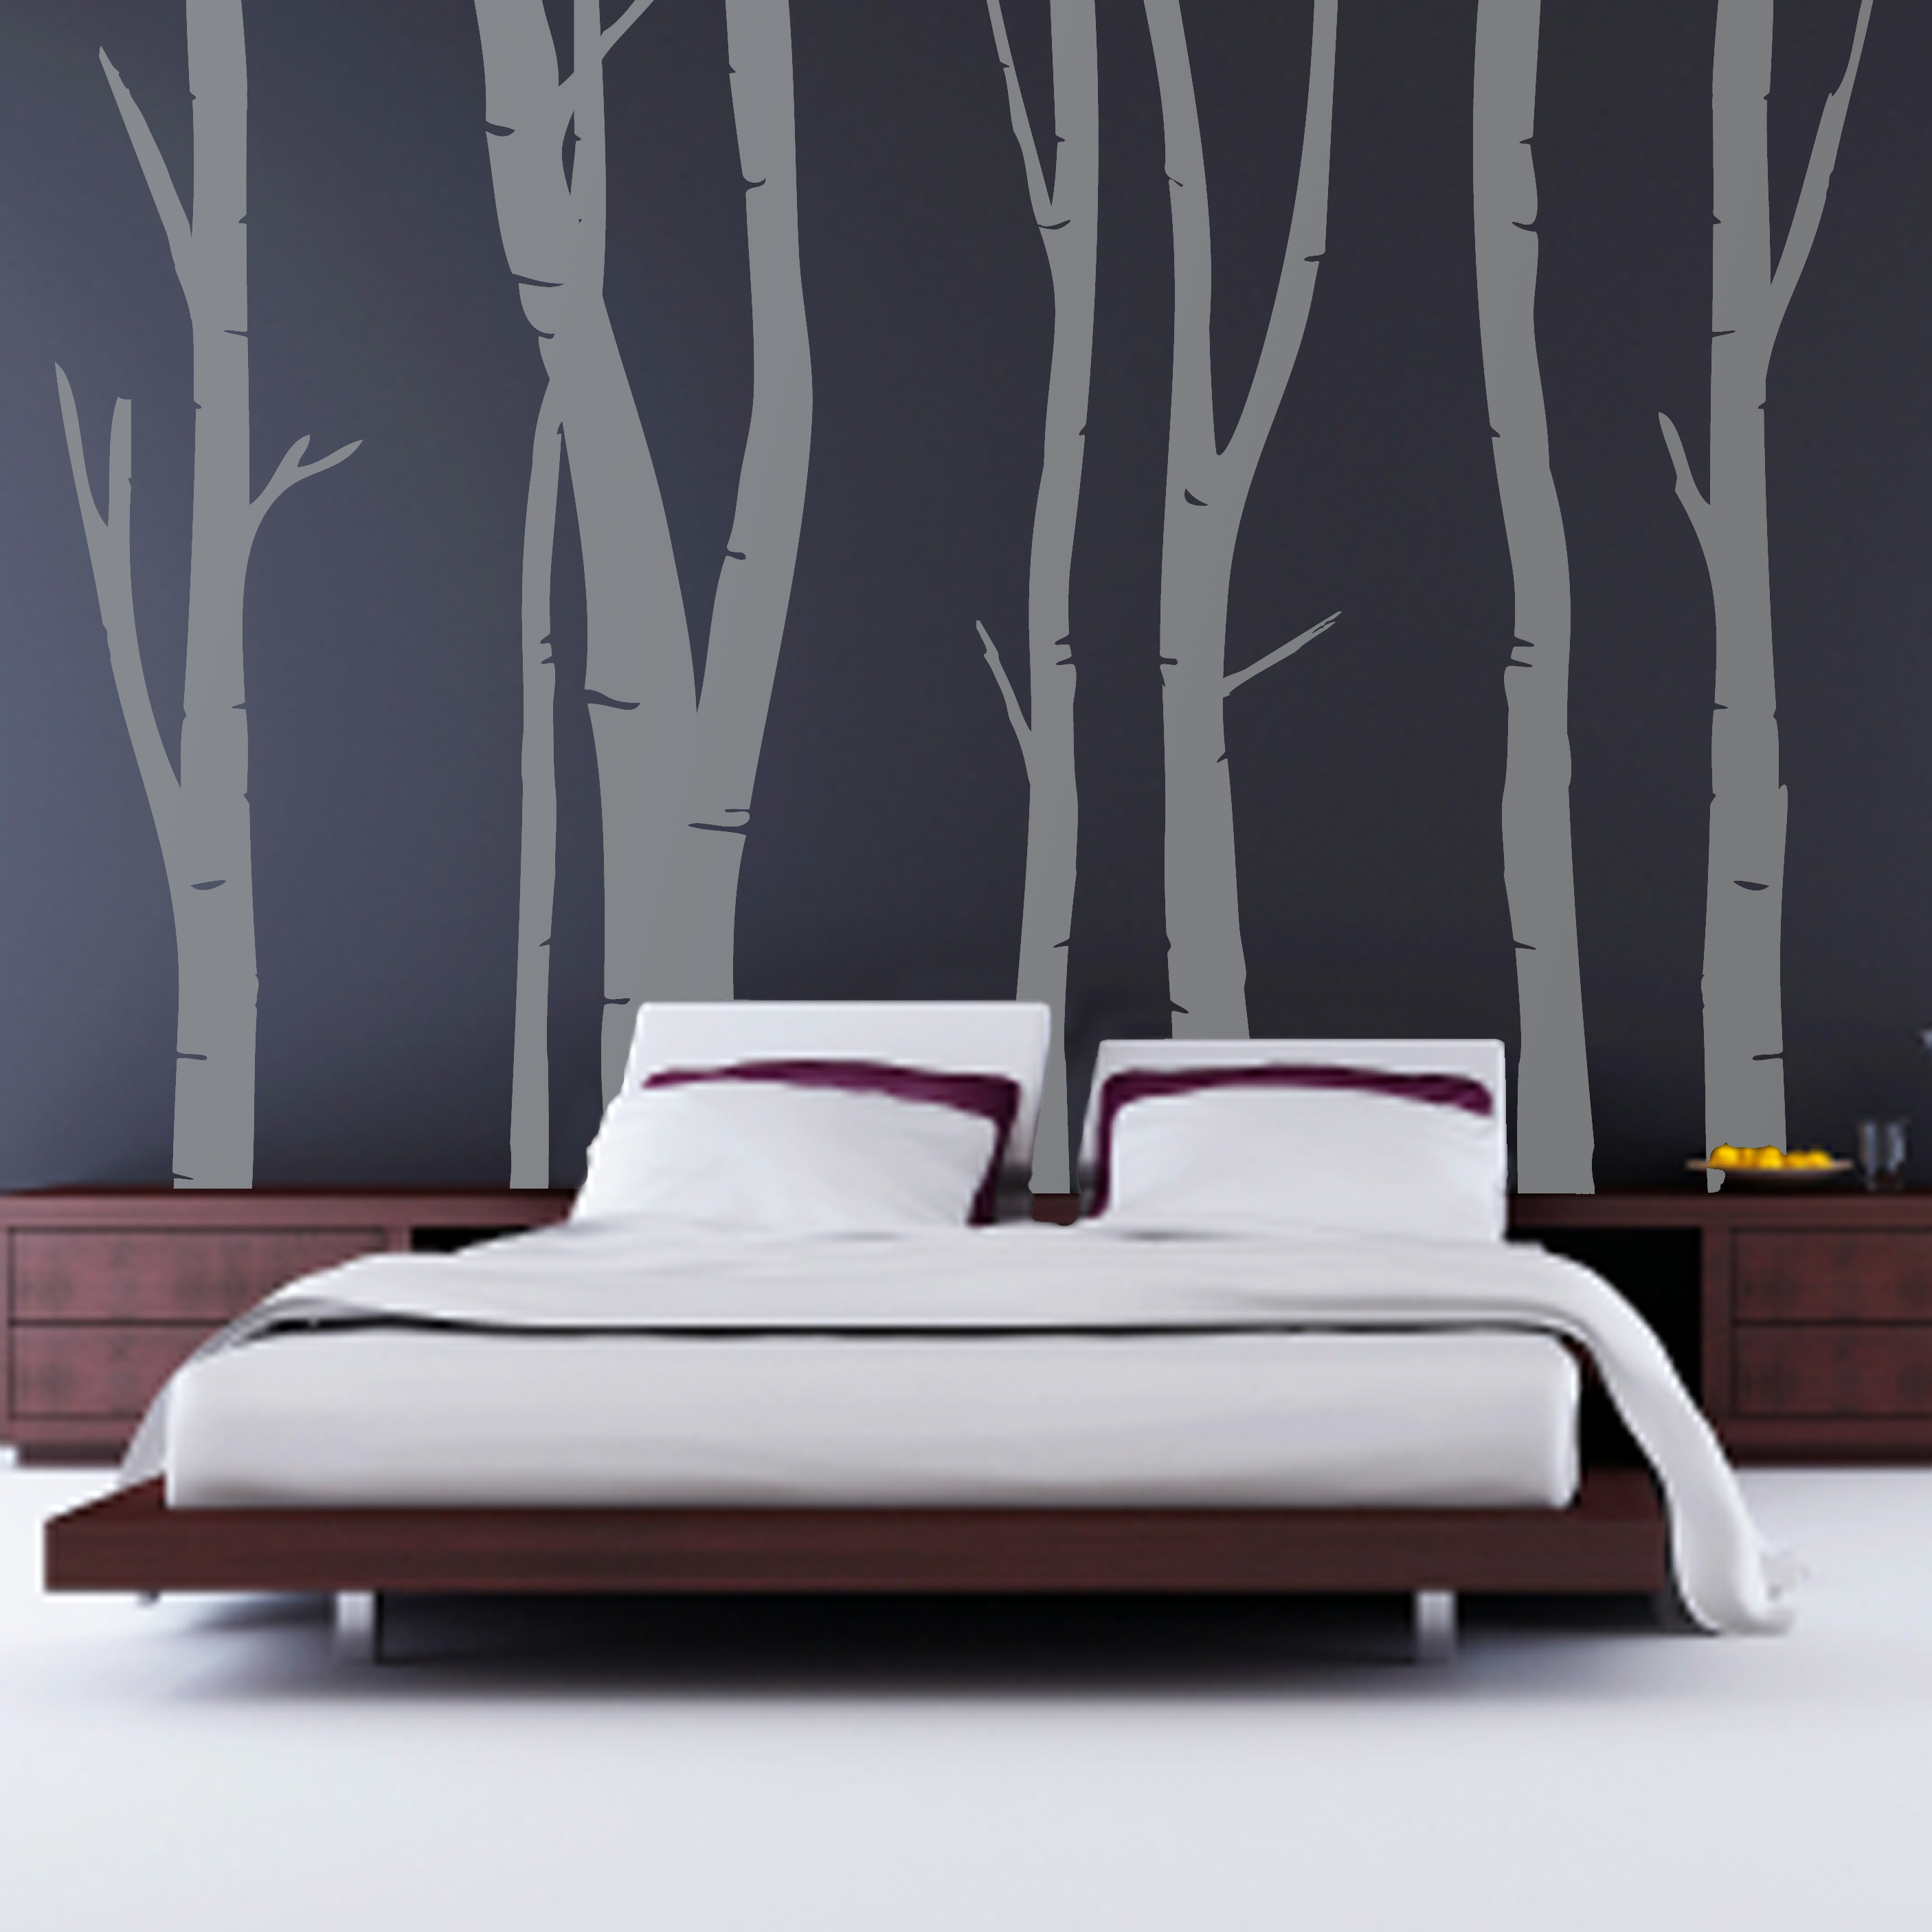 Modern Bedroom Wall Designs 2812 x 2812